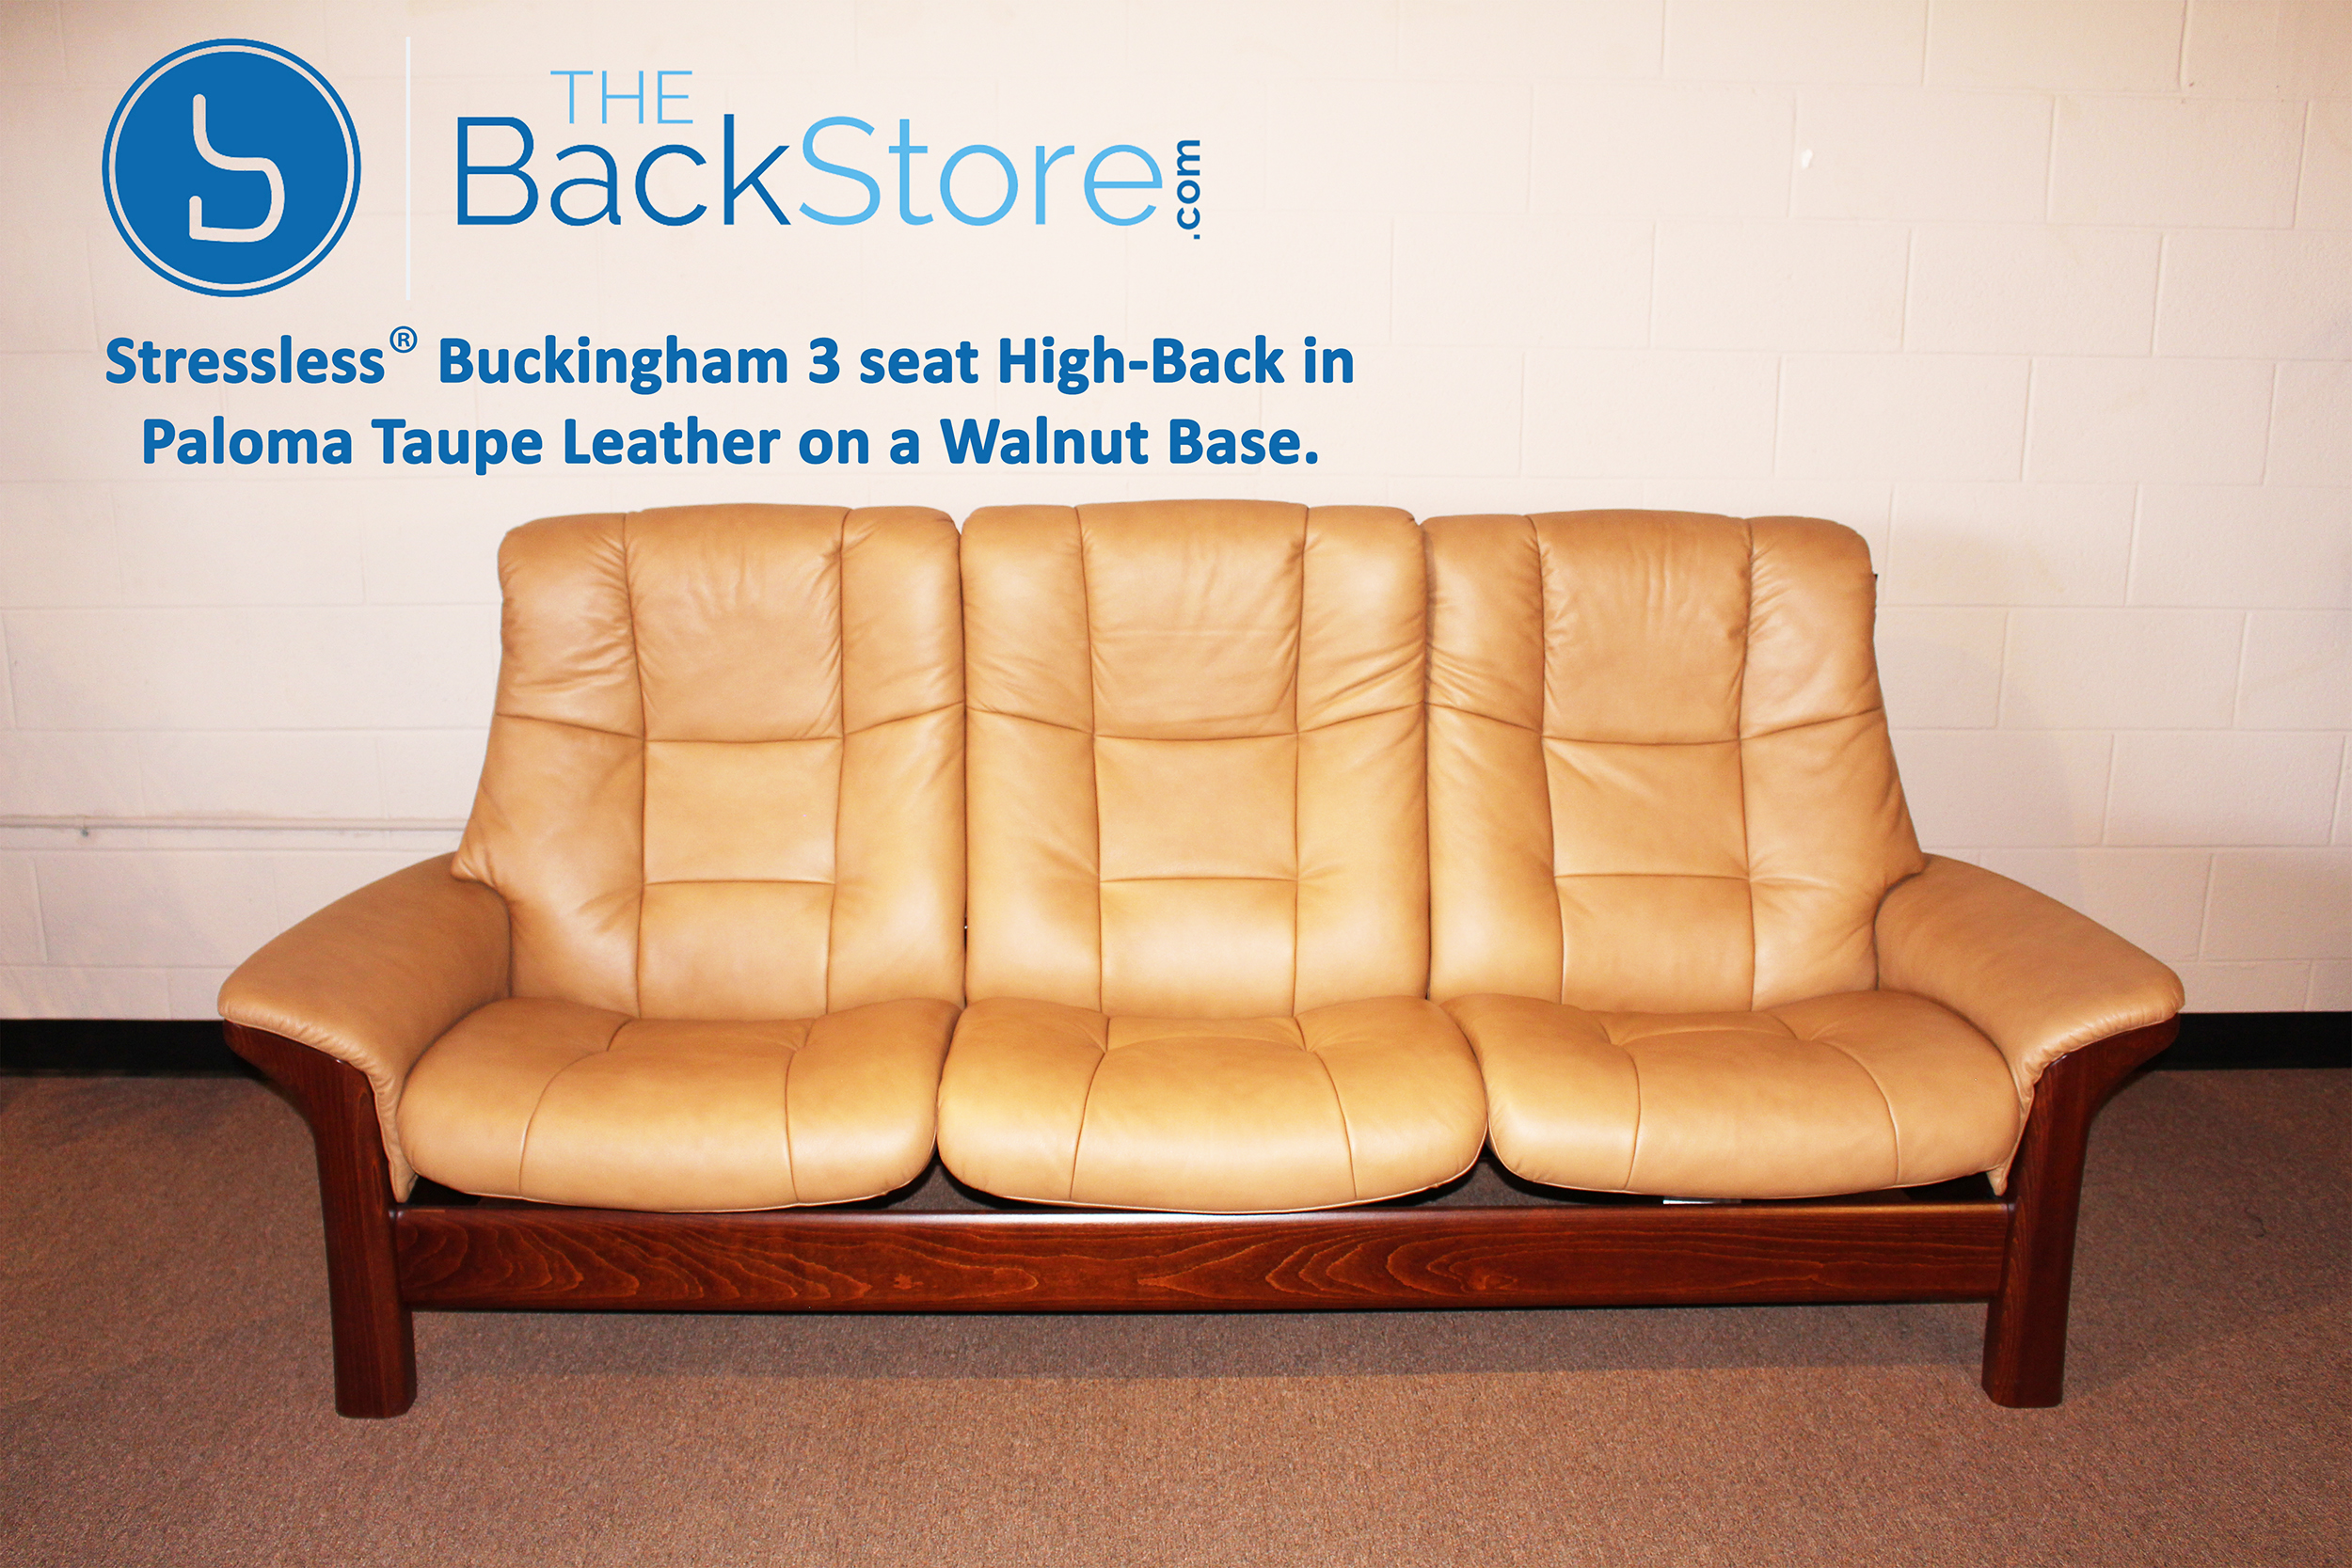 Stressless Buckingham 3 Seat High Back Sofa Paloma Taupe Color Leather Recliner Sofa : high back leather recliner chair - islam-shia.org